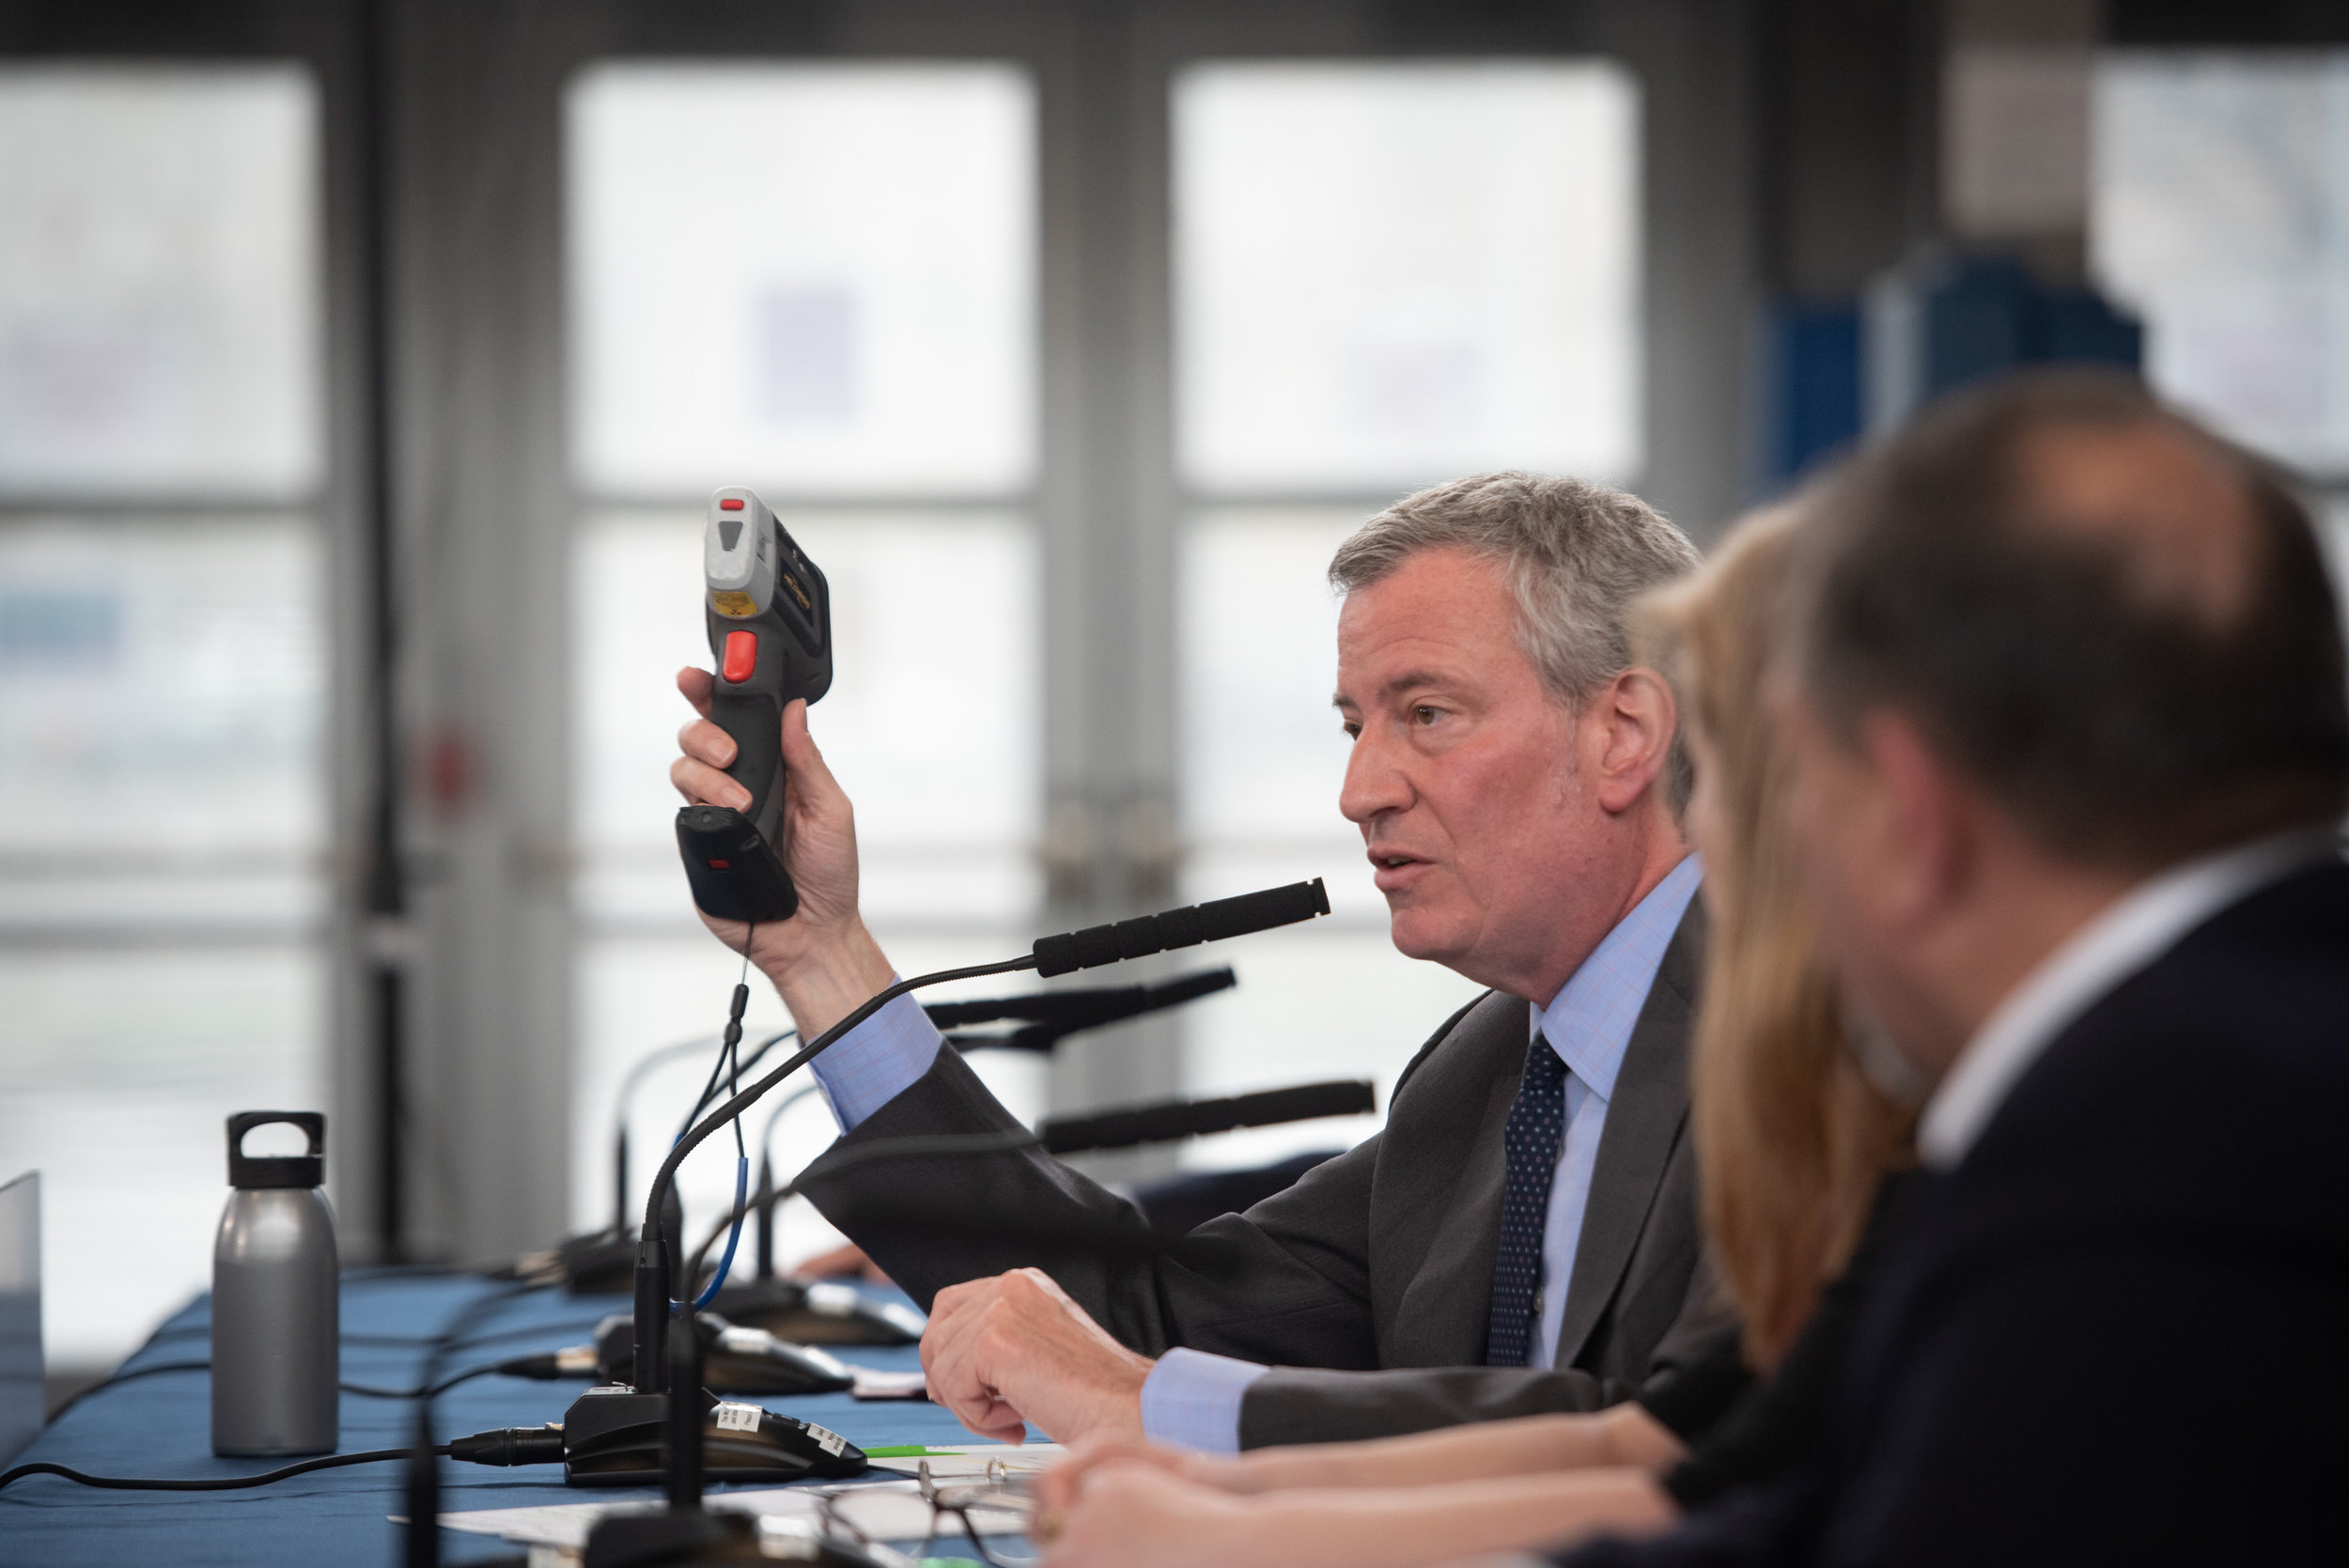 Mayor Bill de Blasio holds a portable x-ray fluorescence analyzer used to test for lead-based paint as he announces a plan to test at 135,000 NYCHA apartments on Monday. NYCHA has yet to set a start date for testing in Queens' 15,299 NYCHA units, the agency told the  Eagle . Photo by Michael Appleton/Mayoral Photography